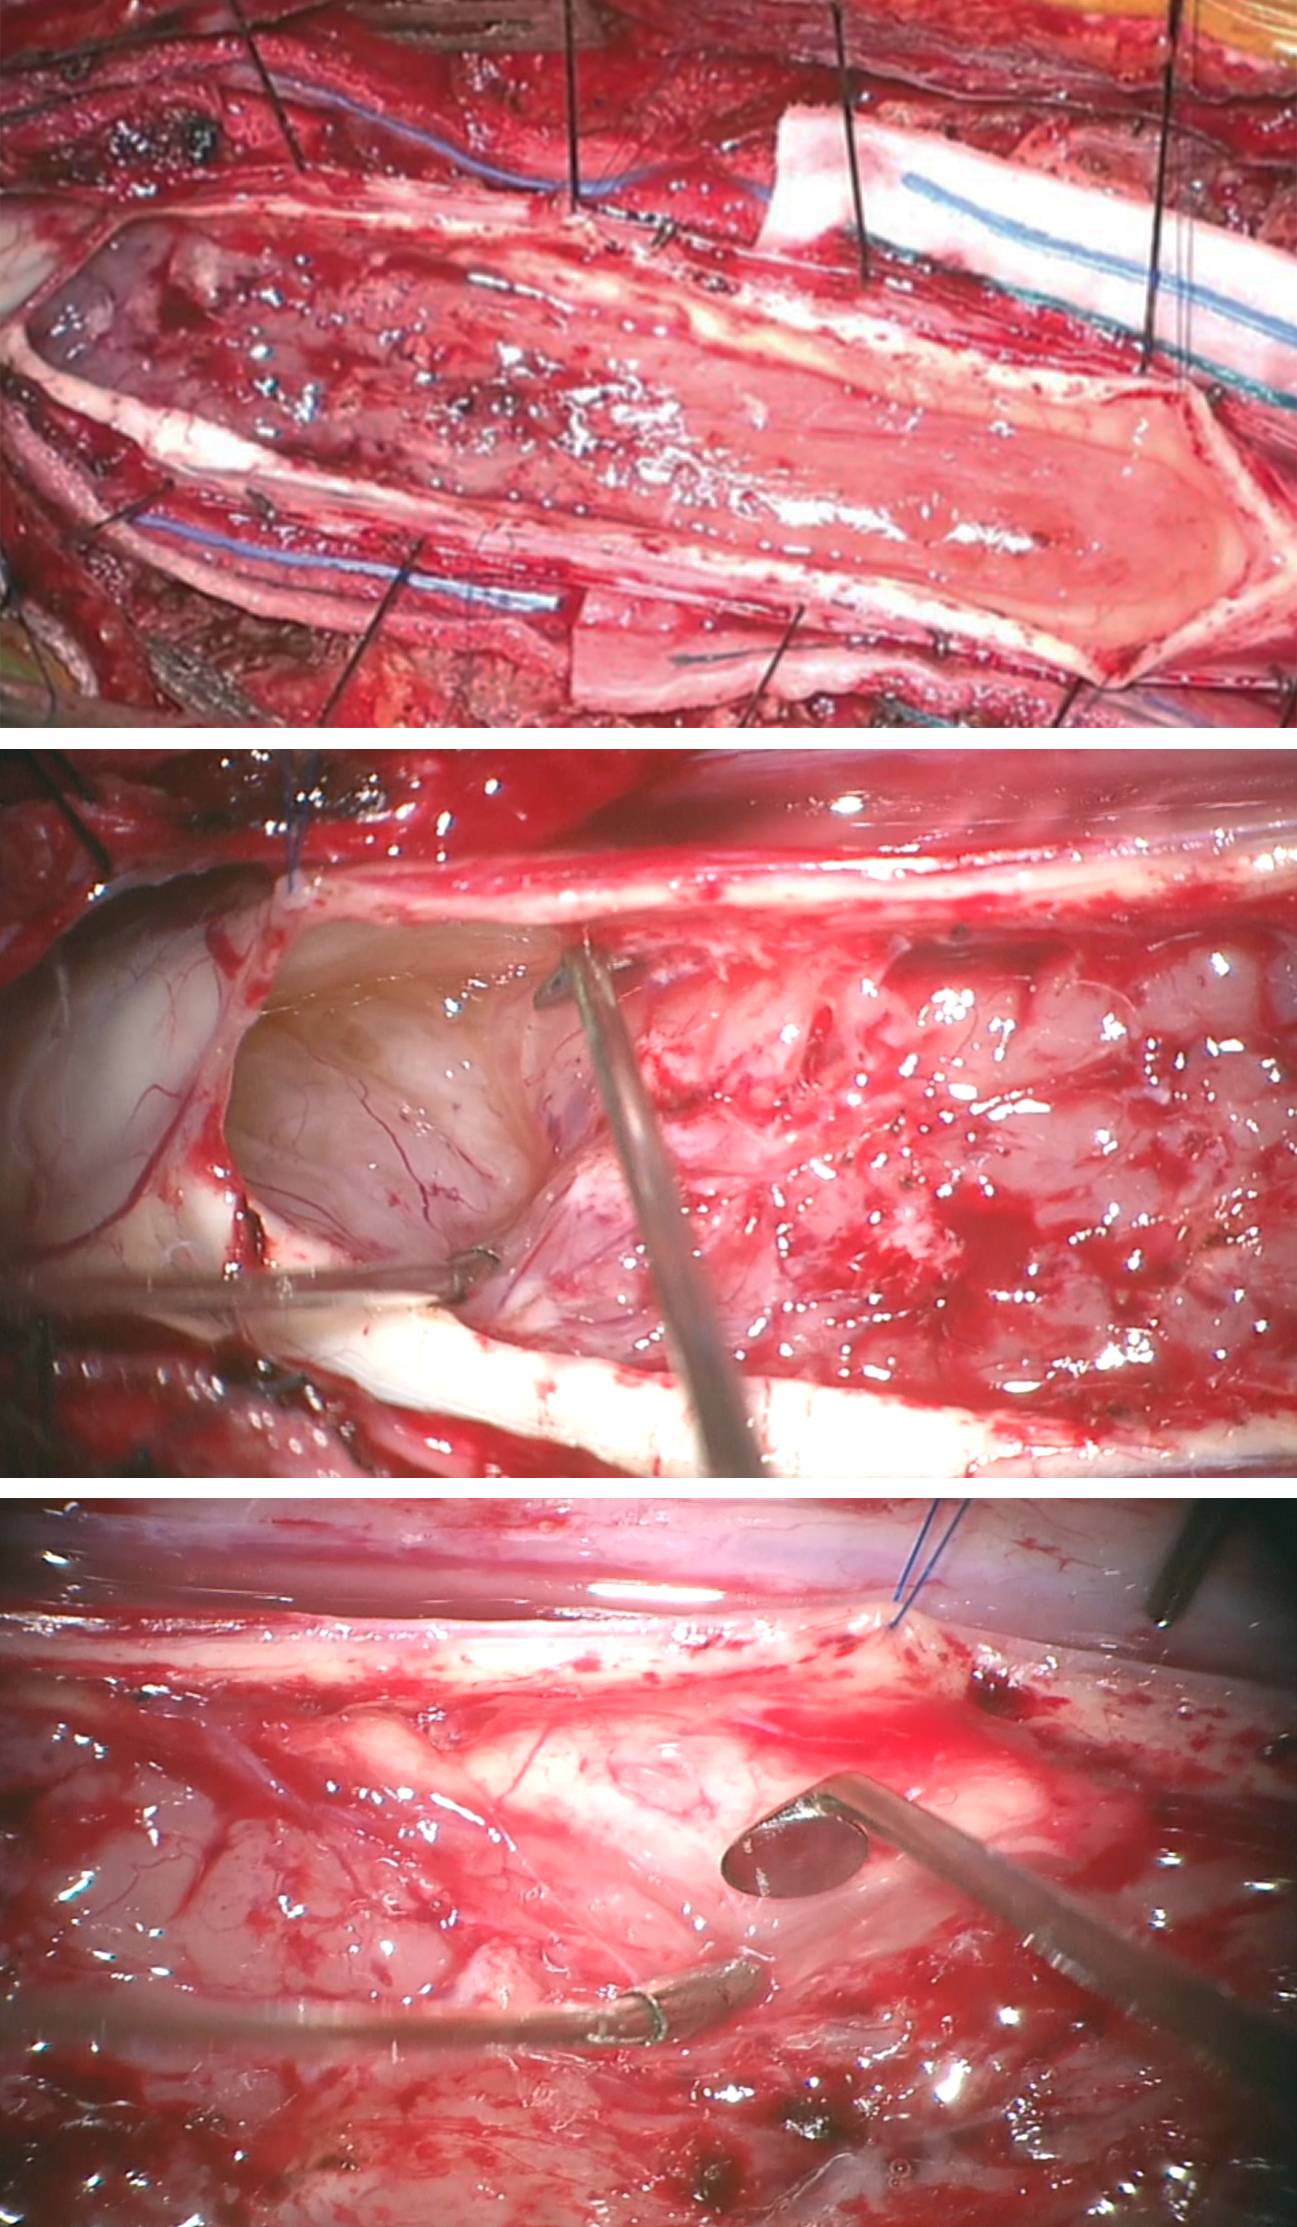 Figure 9: Pial retraction using 6.0 sutures mobilizes the pia mater, increases surgical exposure, and minimizes repetitive cord manipulation (top image). The cyst at the superior pole of the tumor facilitates the initial stages of dissection (middle image). An angled dissector mobilizes the centrally debulked tumor away from the cord (bottom image).